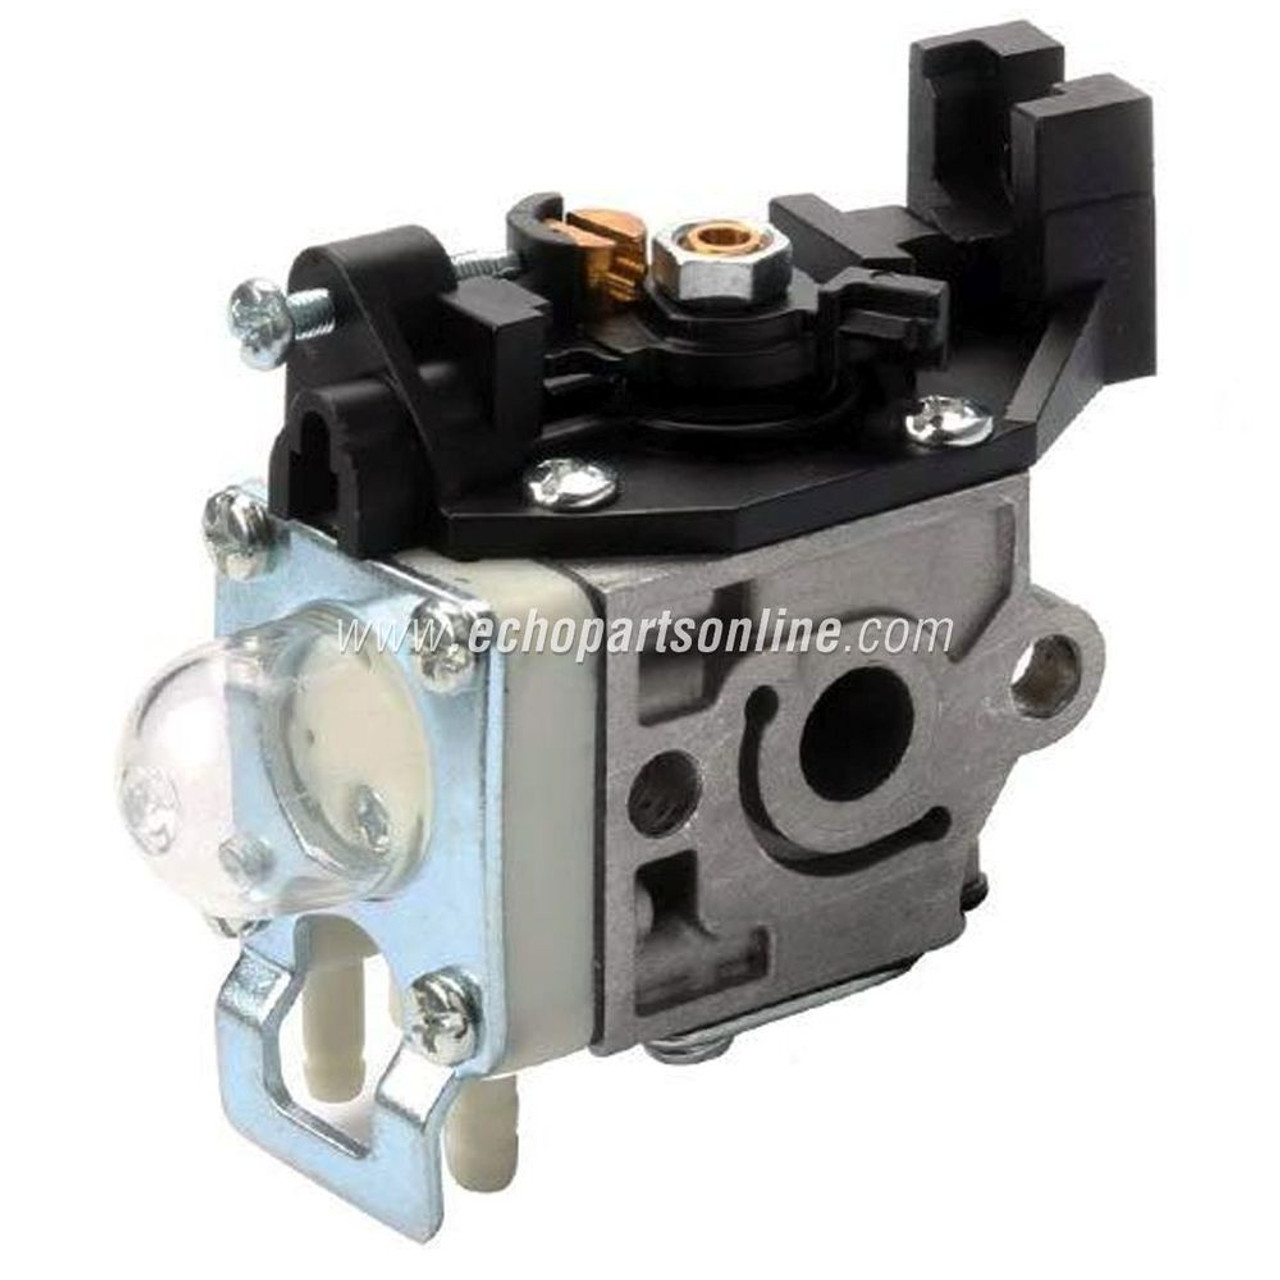 SRM-225 Carburetor A021001692 laid lateral view